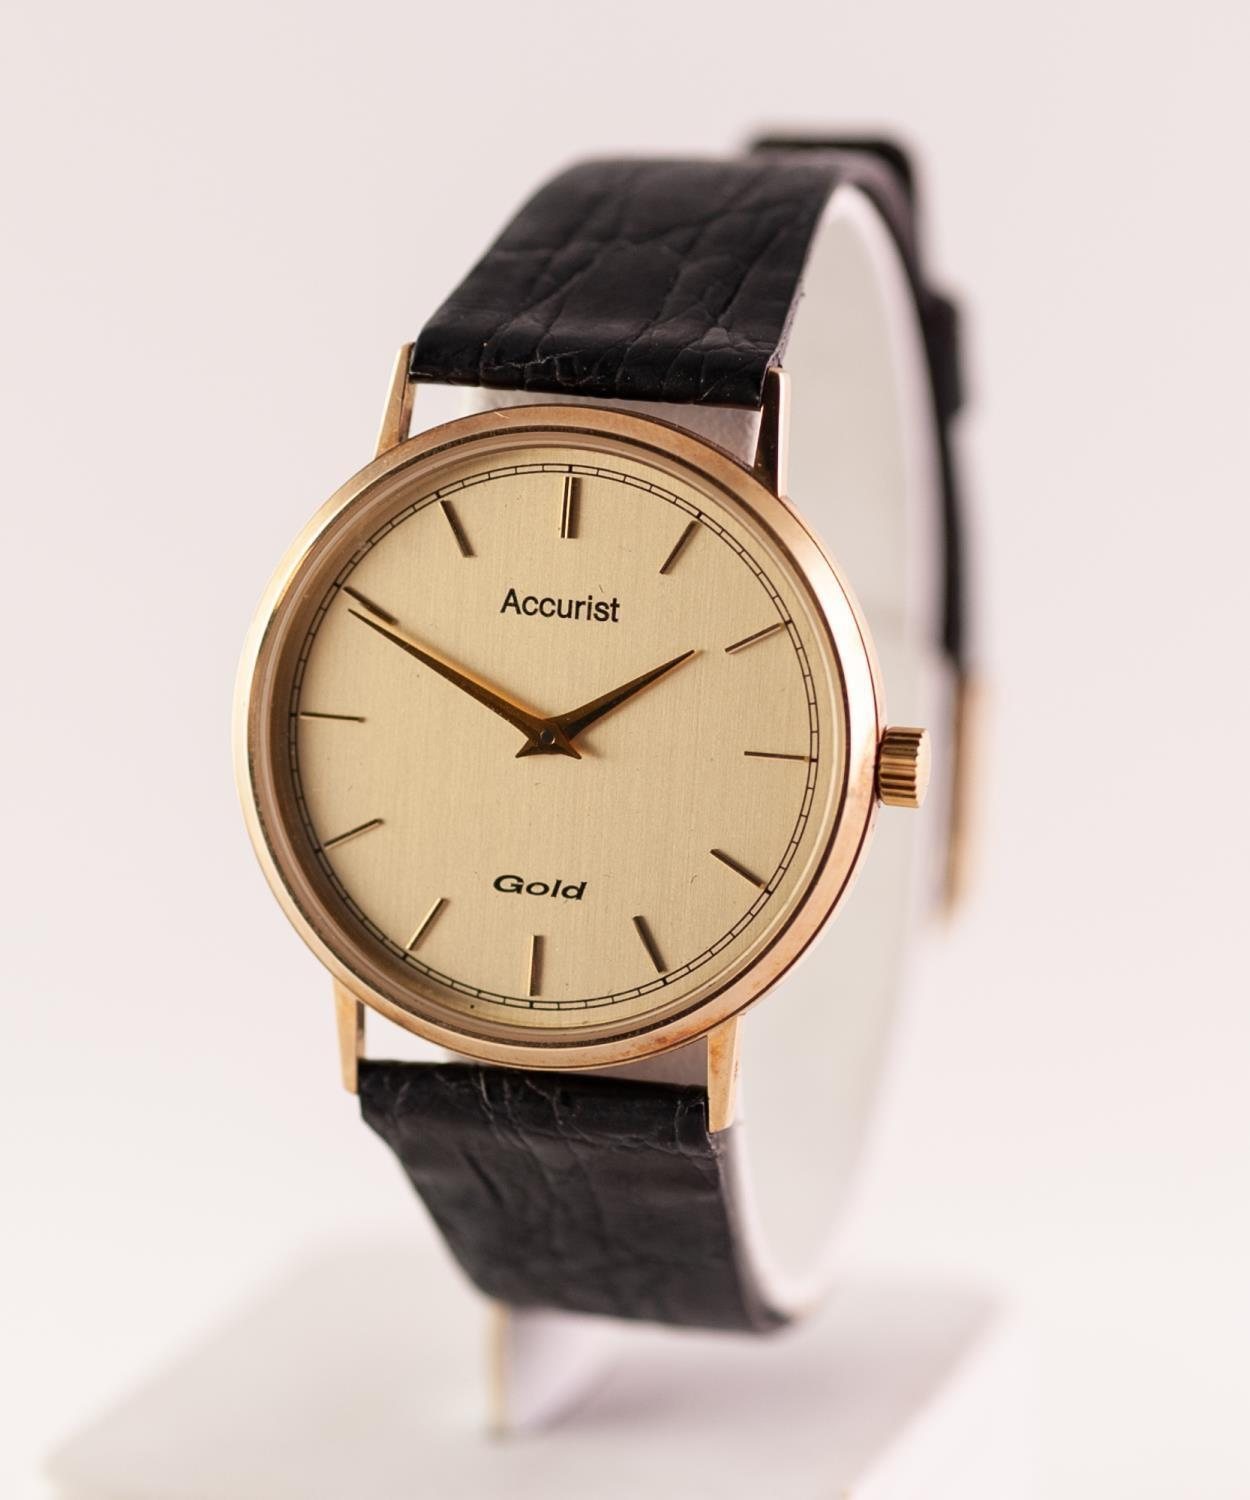 Lot 47 - A 9CT GOLD CASED ACCURIST QUARTZ WRISTWATCH The circular shape gold tone dial with baton hour